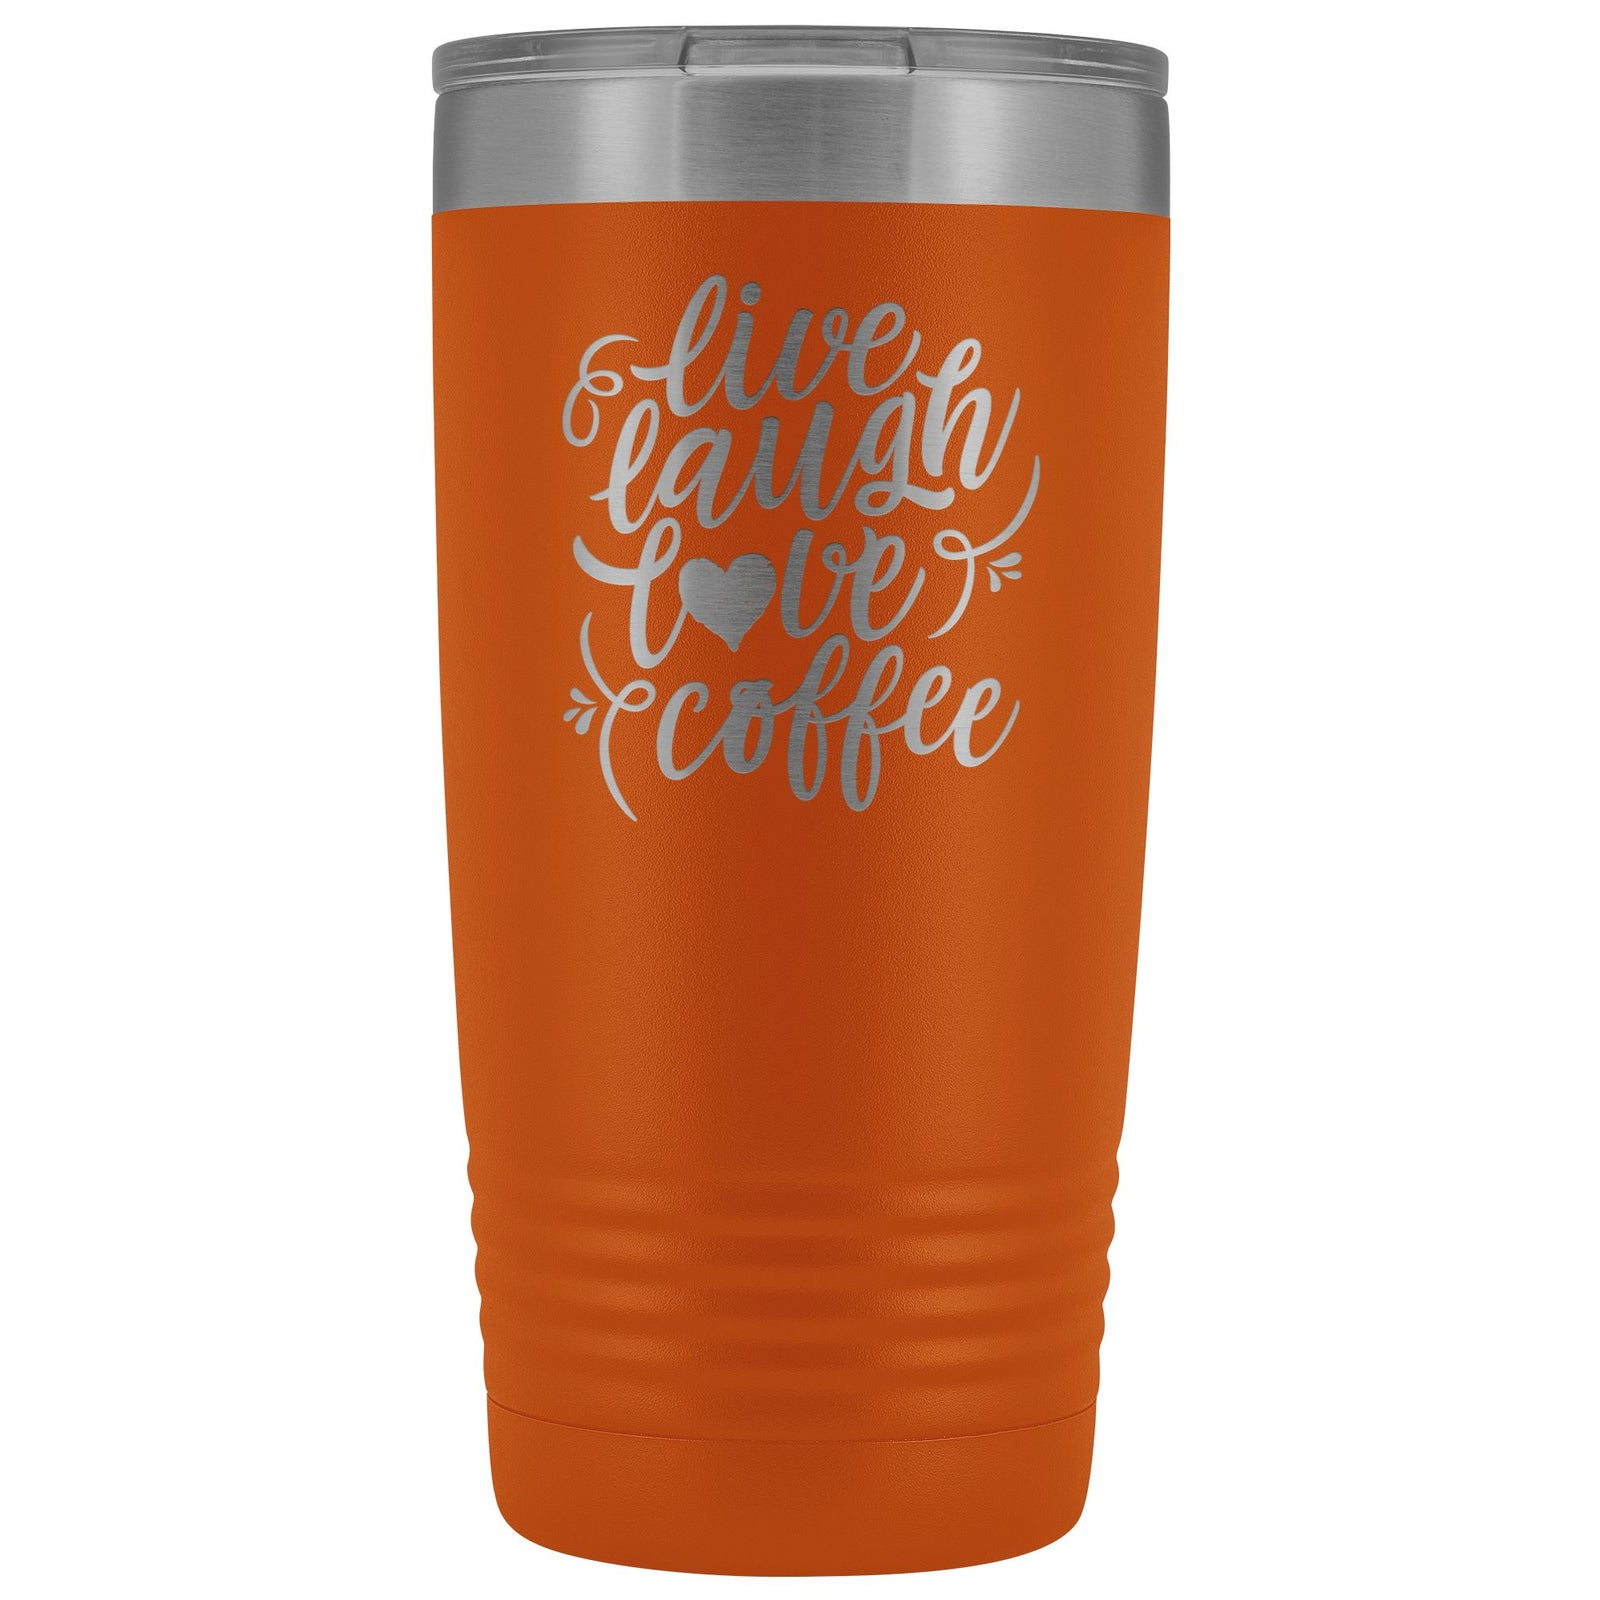 Live, Laugh, Love, Coffee • 15oz Insulated Coffee Tumbler Tumblers teelaunch Orange